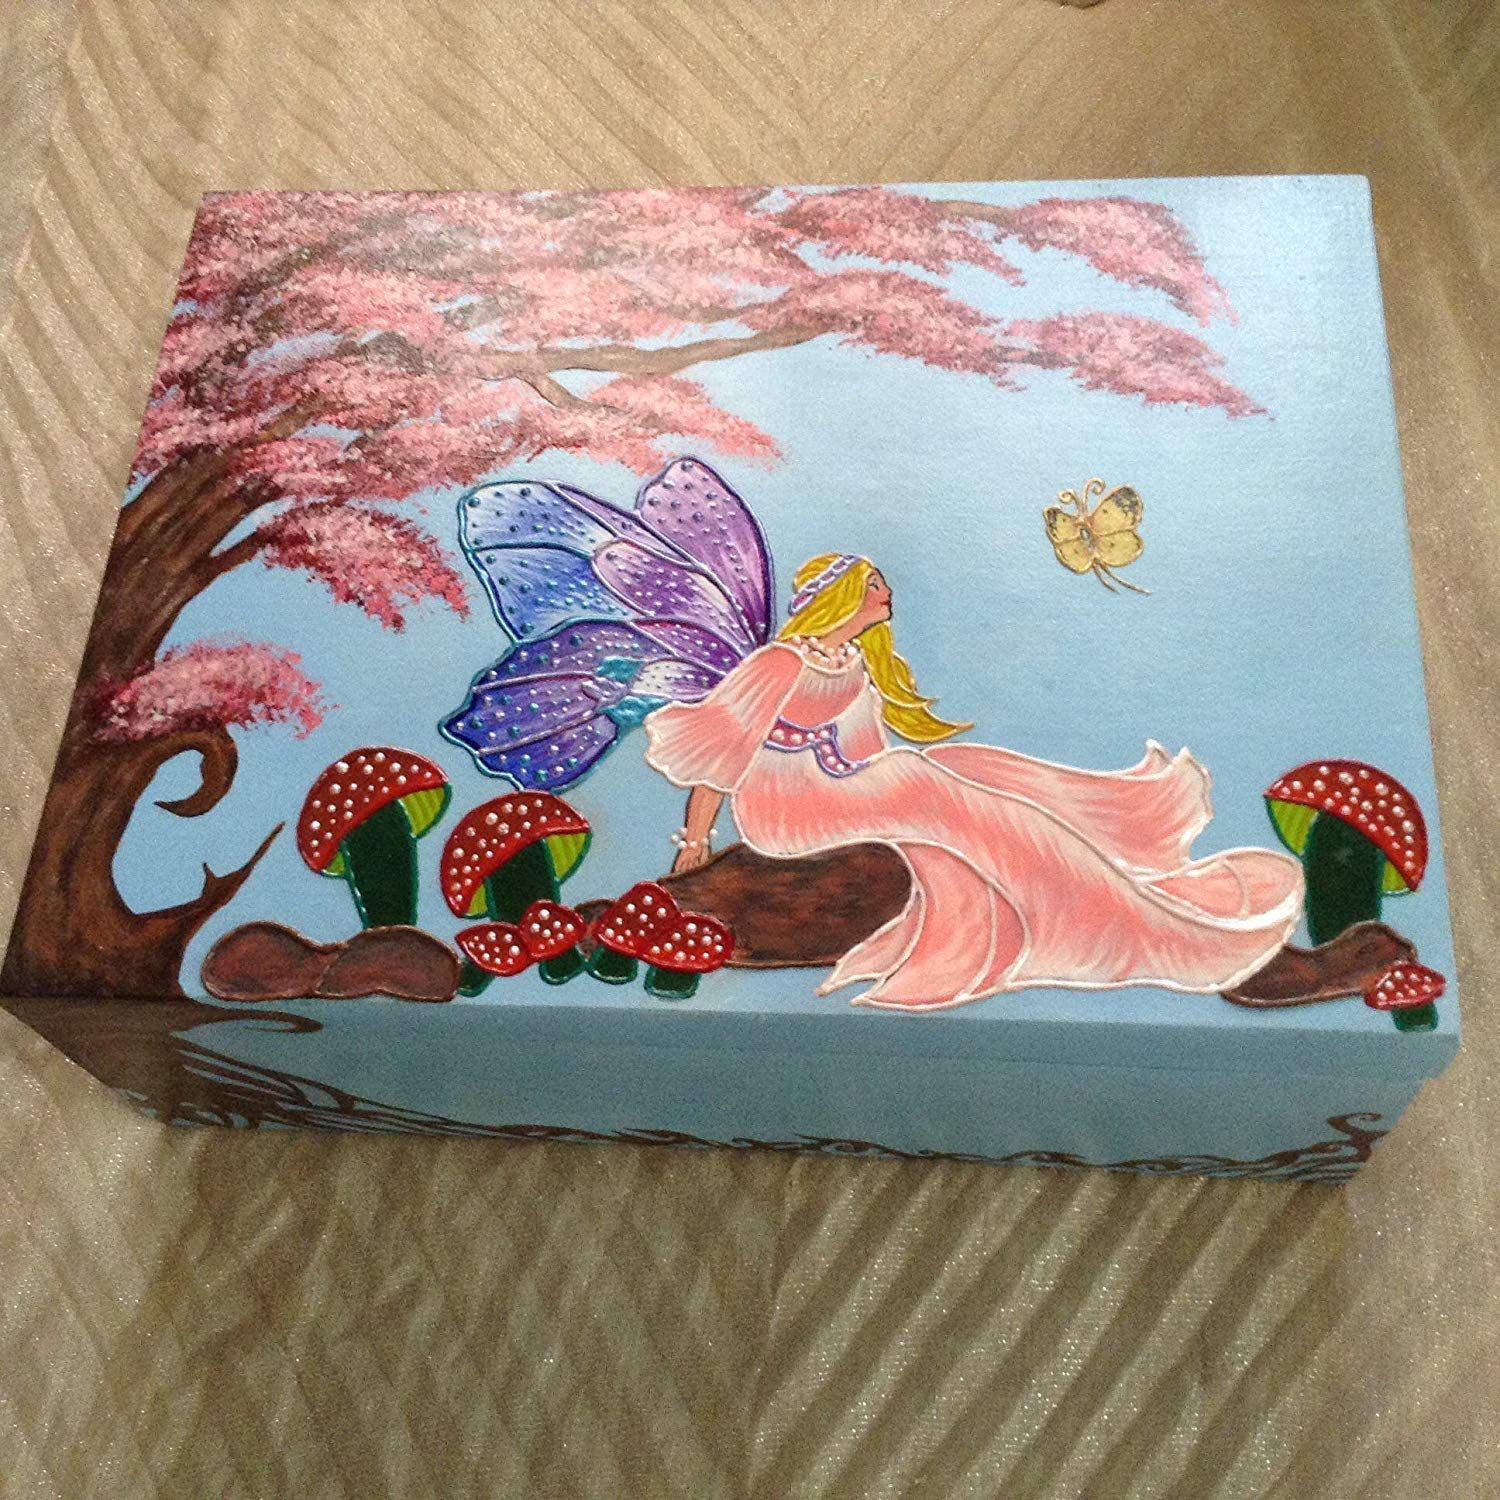 Get Quotations Fairy Painting Keepsake Box Wooden Trunk Personalized Customizable Name Decorative